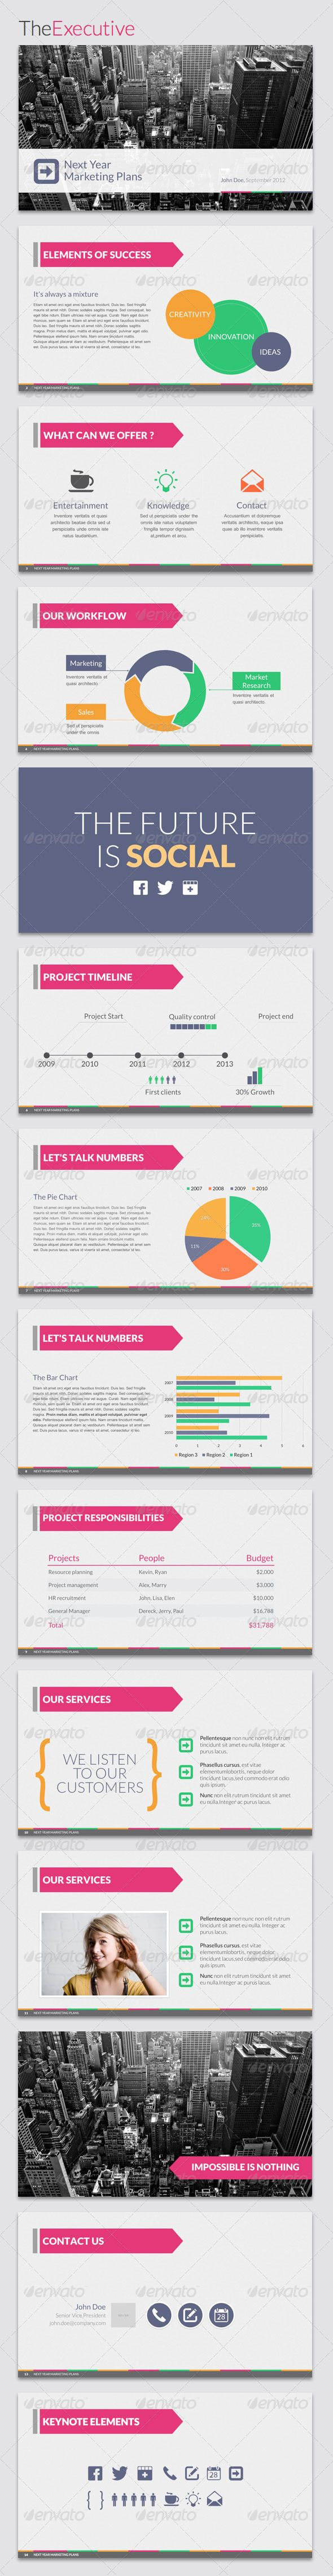 TheExecutive Powerpoint Template - GraphicRiver Item for Sale